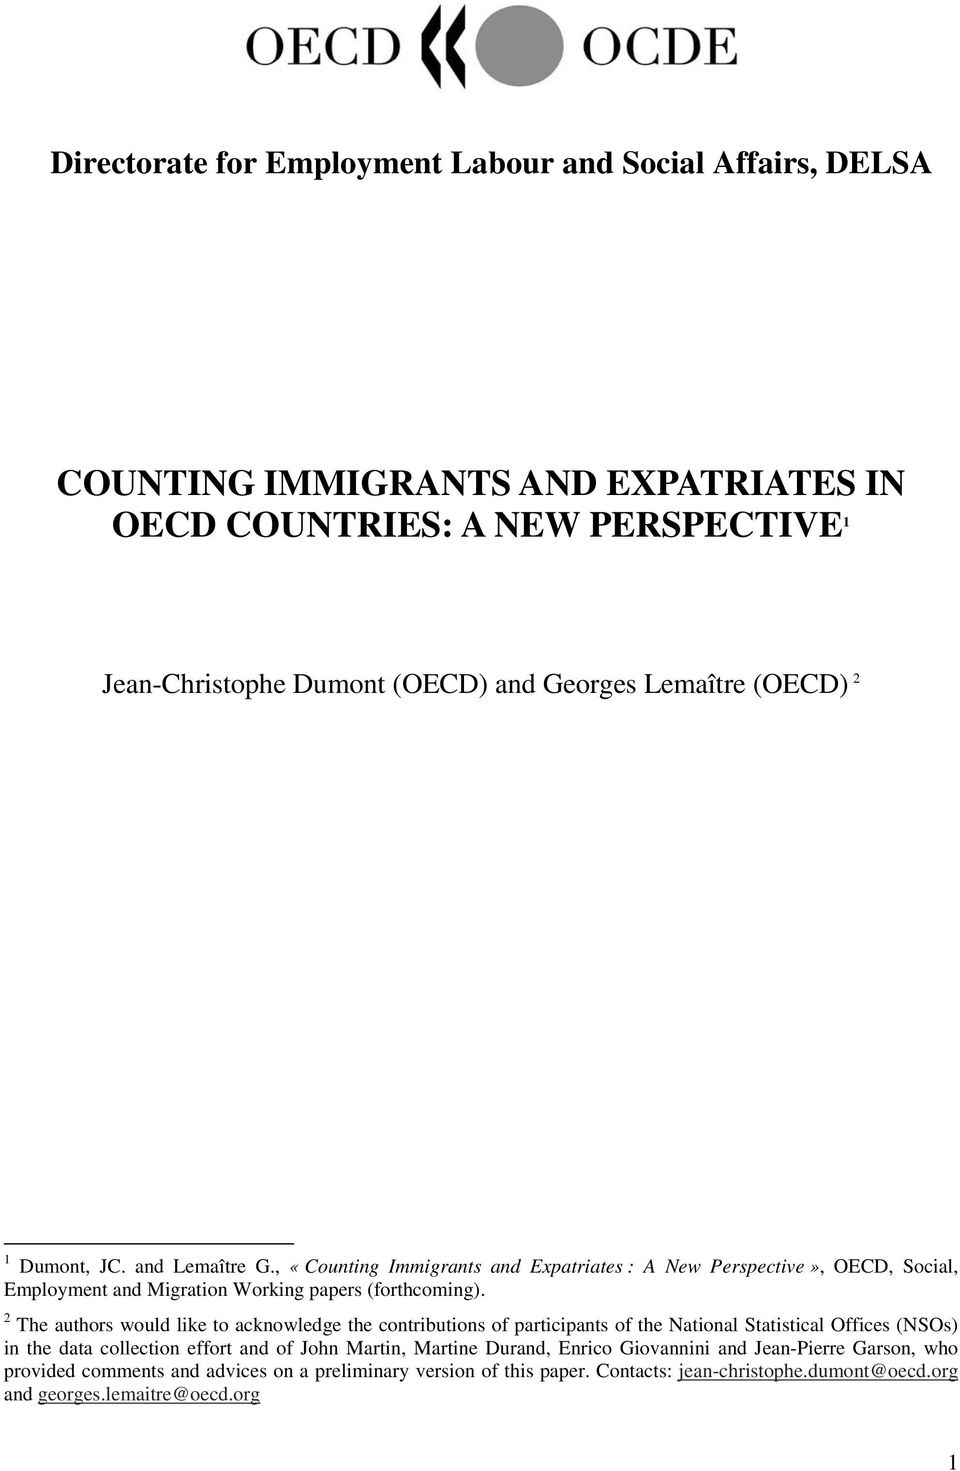 COUNTING IMMIGRANTS AND EXPATRIATES IN OECD COUNTRIES: A NEW